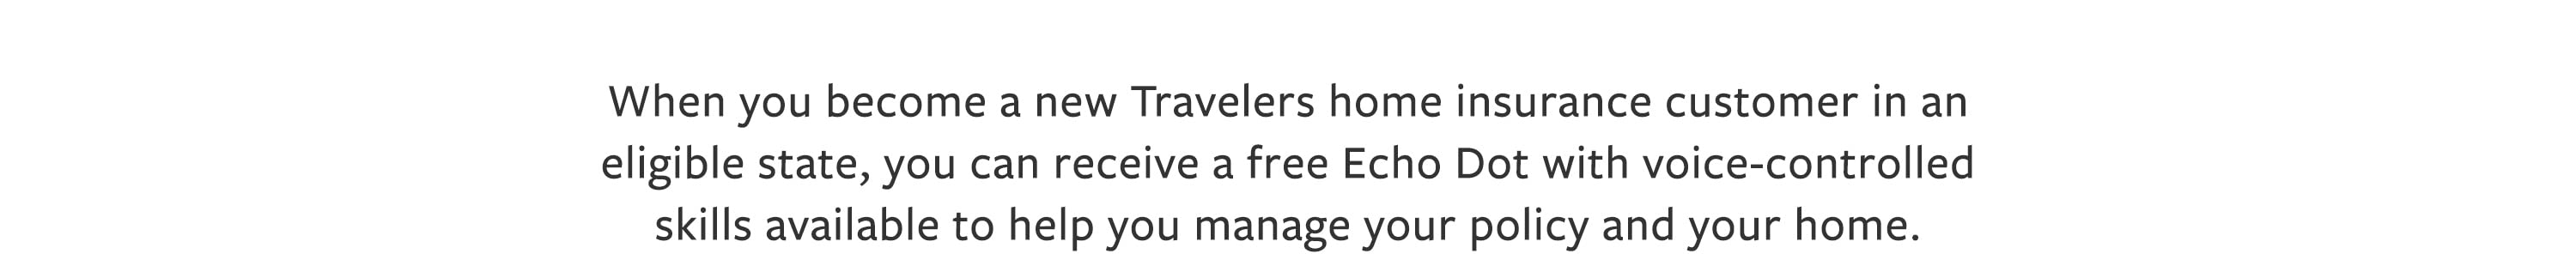 When you become a new Travelers home insurance customer in an eligible state, you can receive a free Echo Dot with voice-controlled skills available to help you manage your policy and your home.